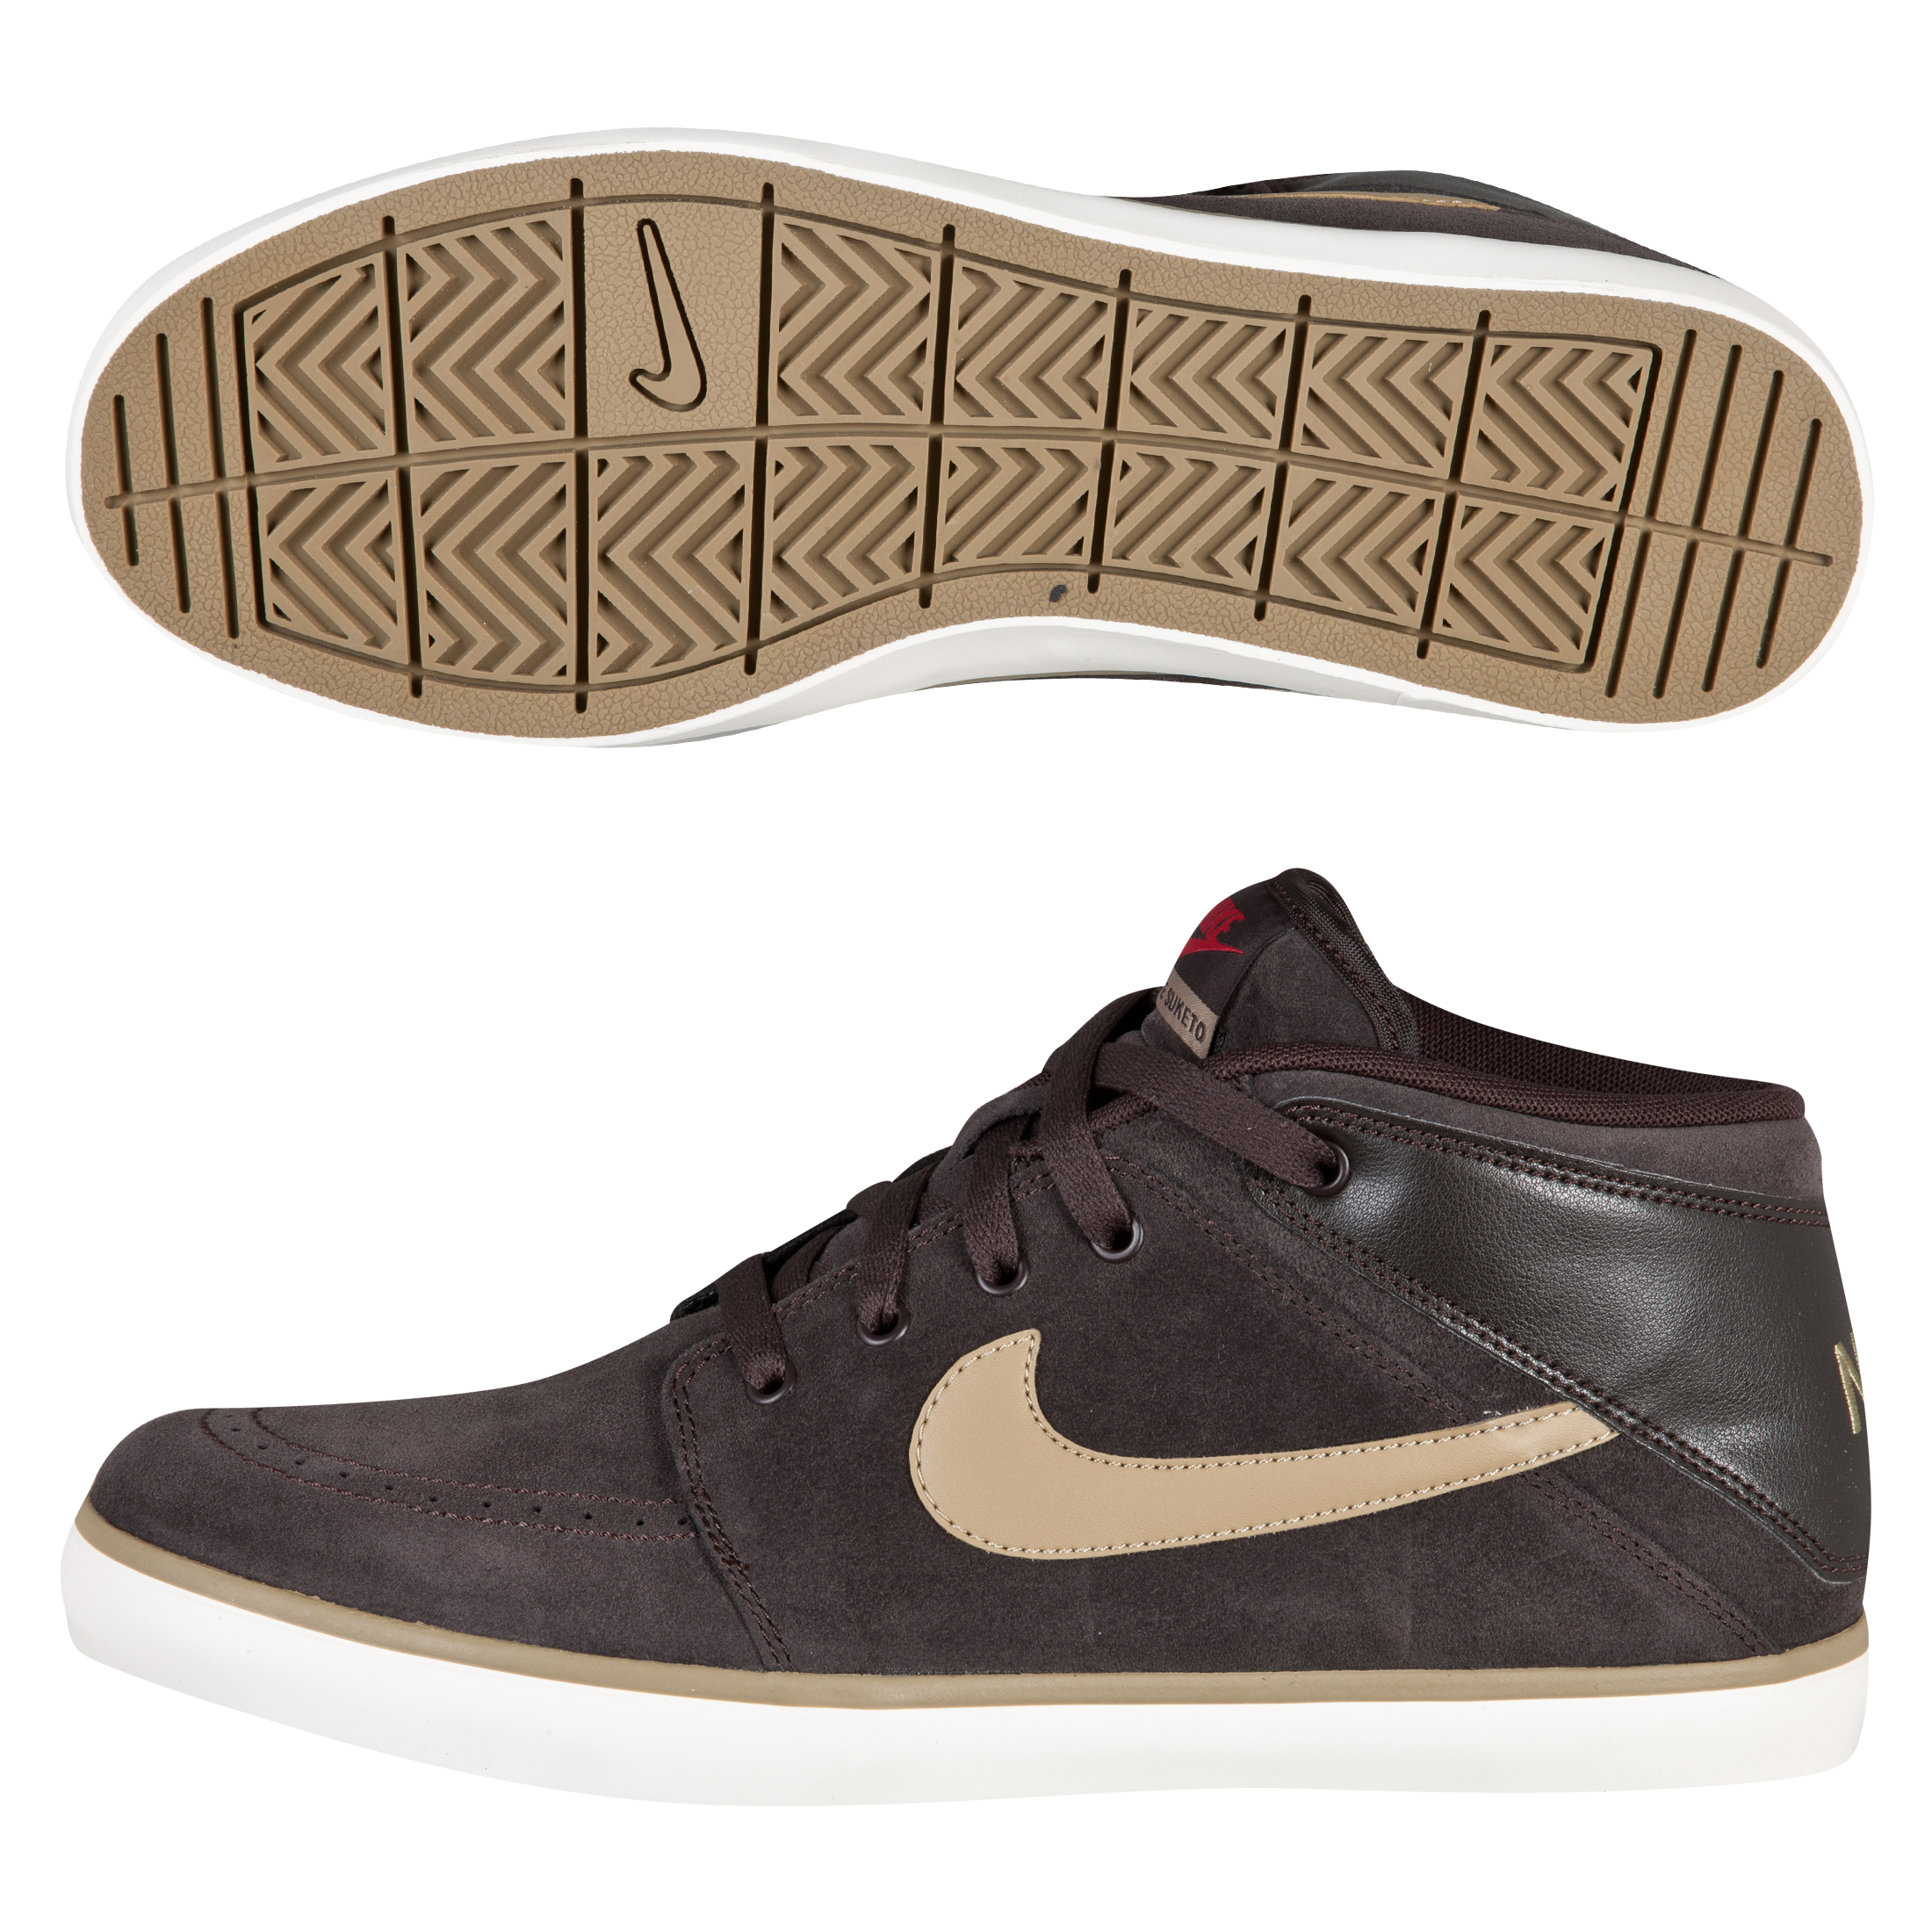 Nike Suketo Mid Leather Trainers - Black Tea/Filbert/Sail/Gym Red